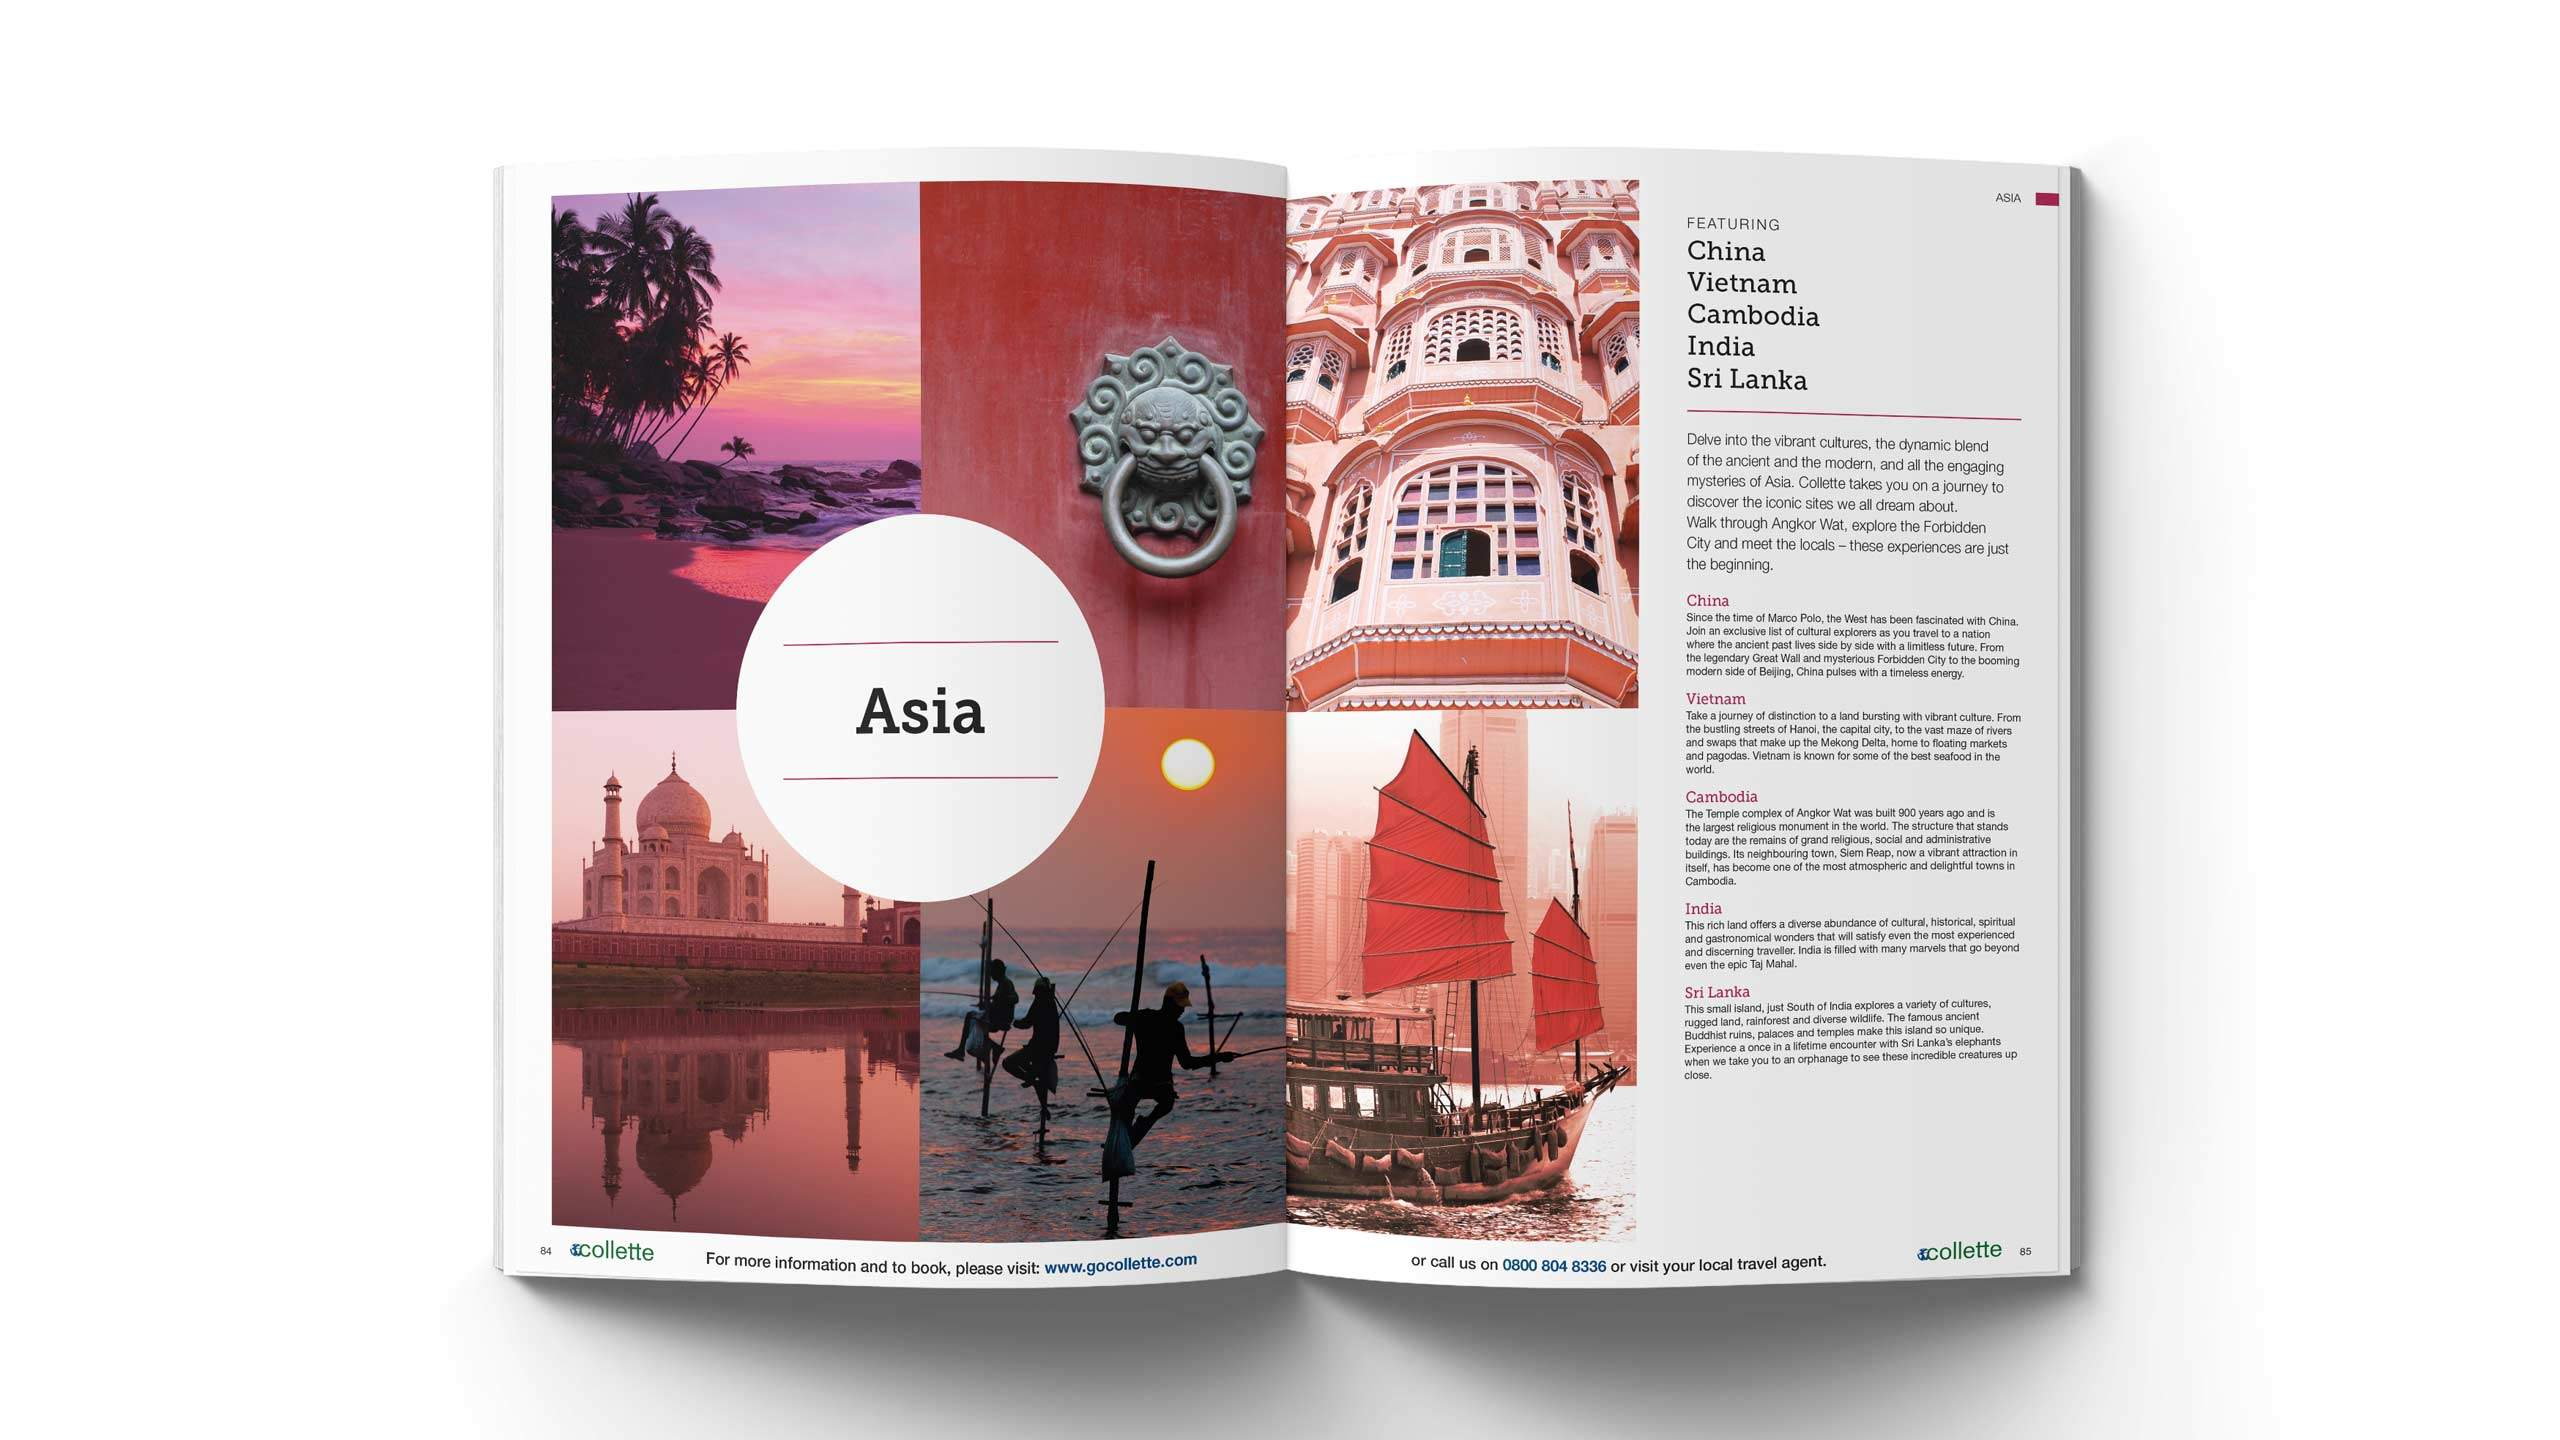 escorted travel brochure design asia pages collette thomas cook